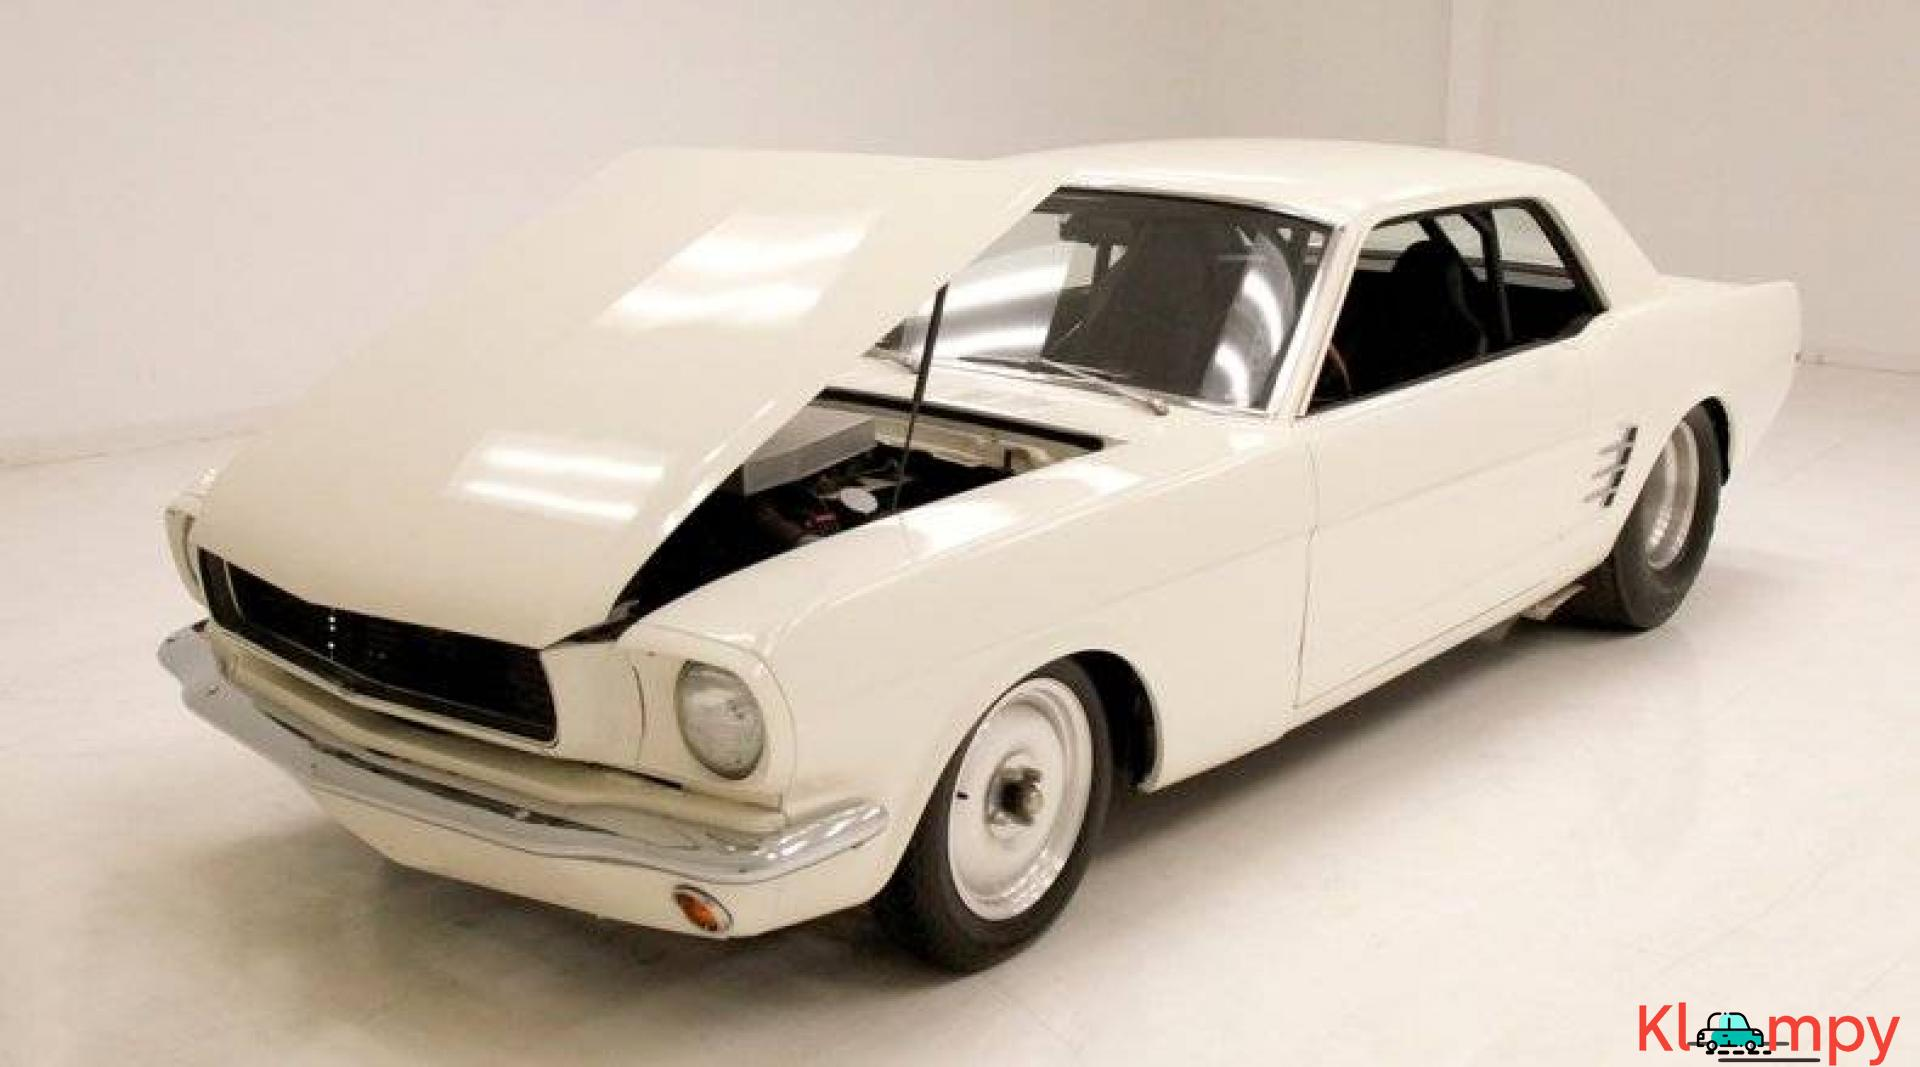 1966 Ford Mustang Coupe 302ci V8 White - 9/20